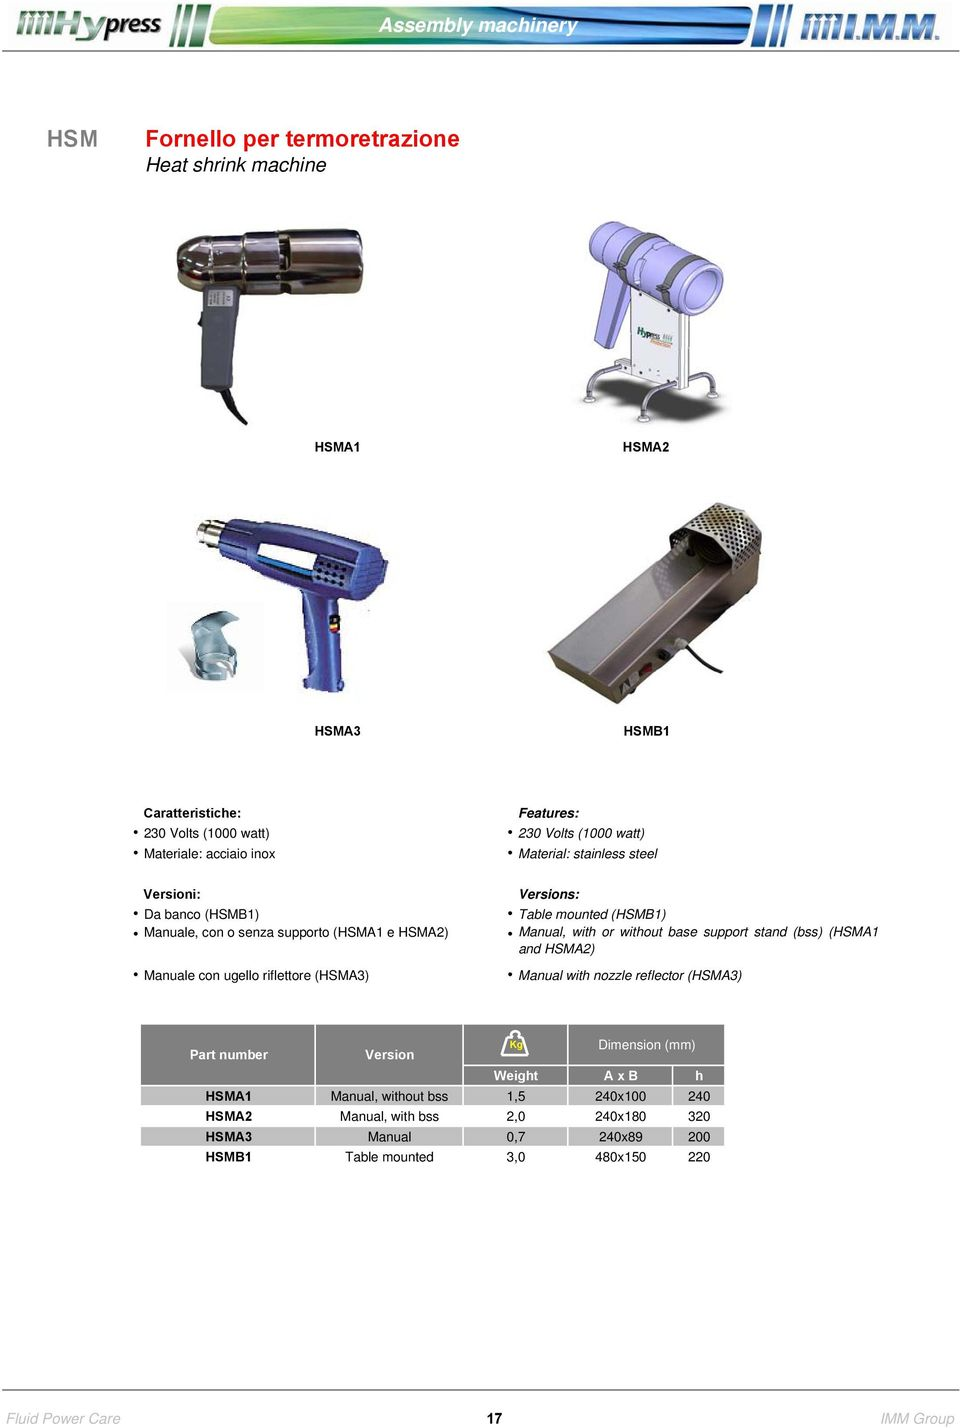 support stand (bss) (HSMA1 and HSMA2) Manuale con ugello riflettore (HSMA3) Manual with nozzle reflector (HSMA3) Part number Version Kg Dimension (mm)